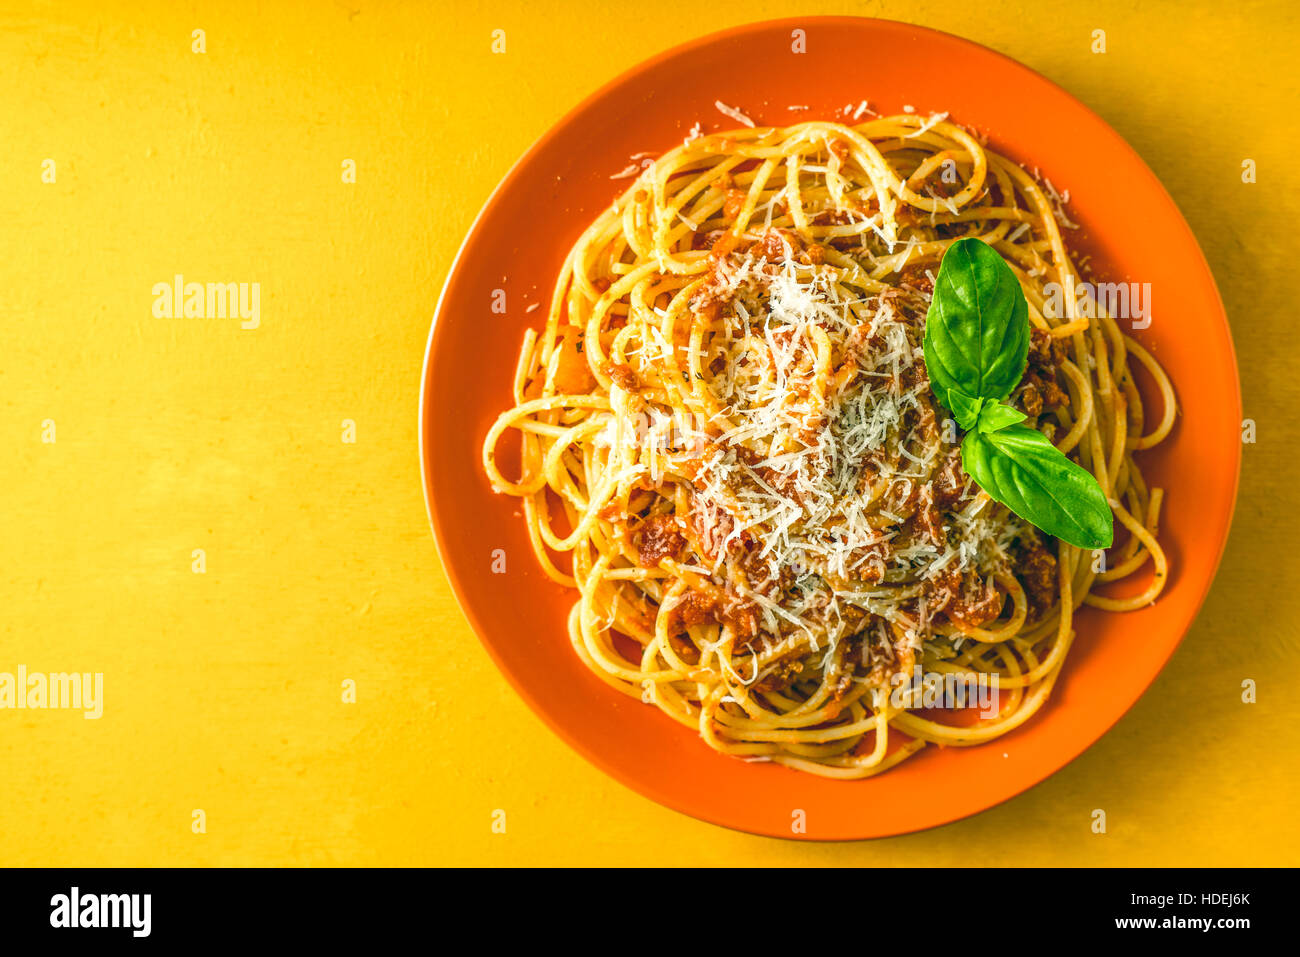 Spaghetti Bolognese on the orange plate on the yellow background top view - Stock Image